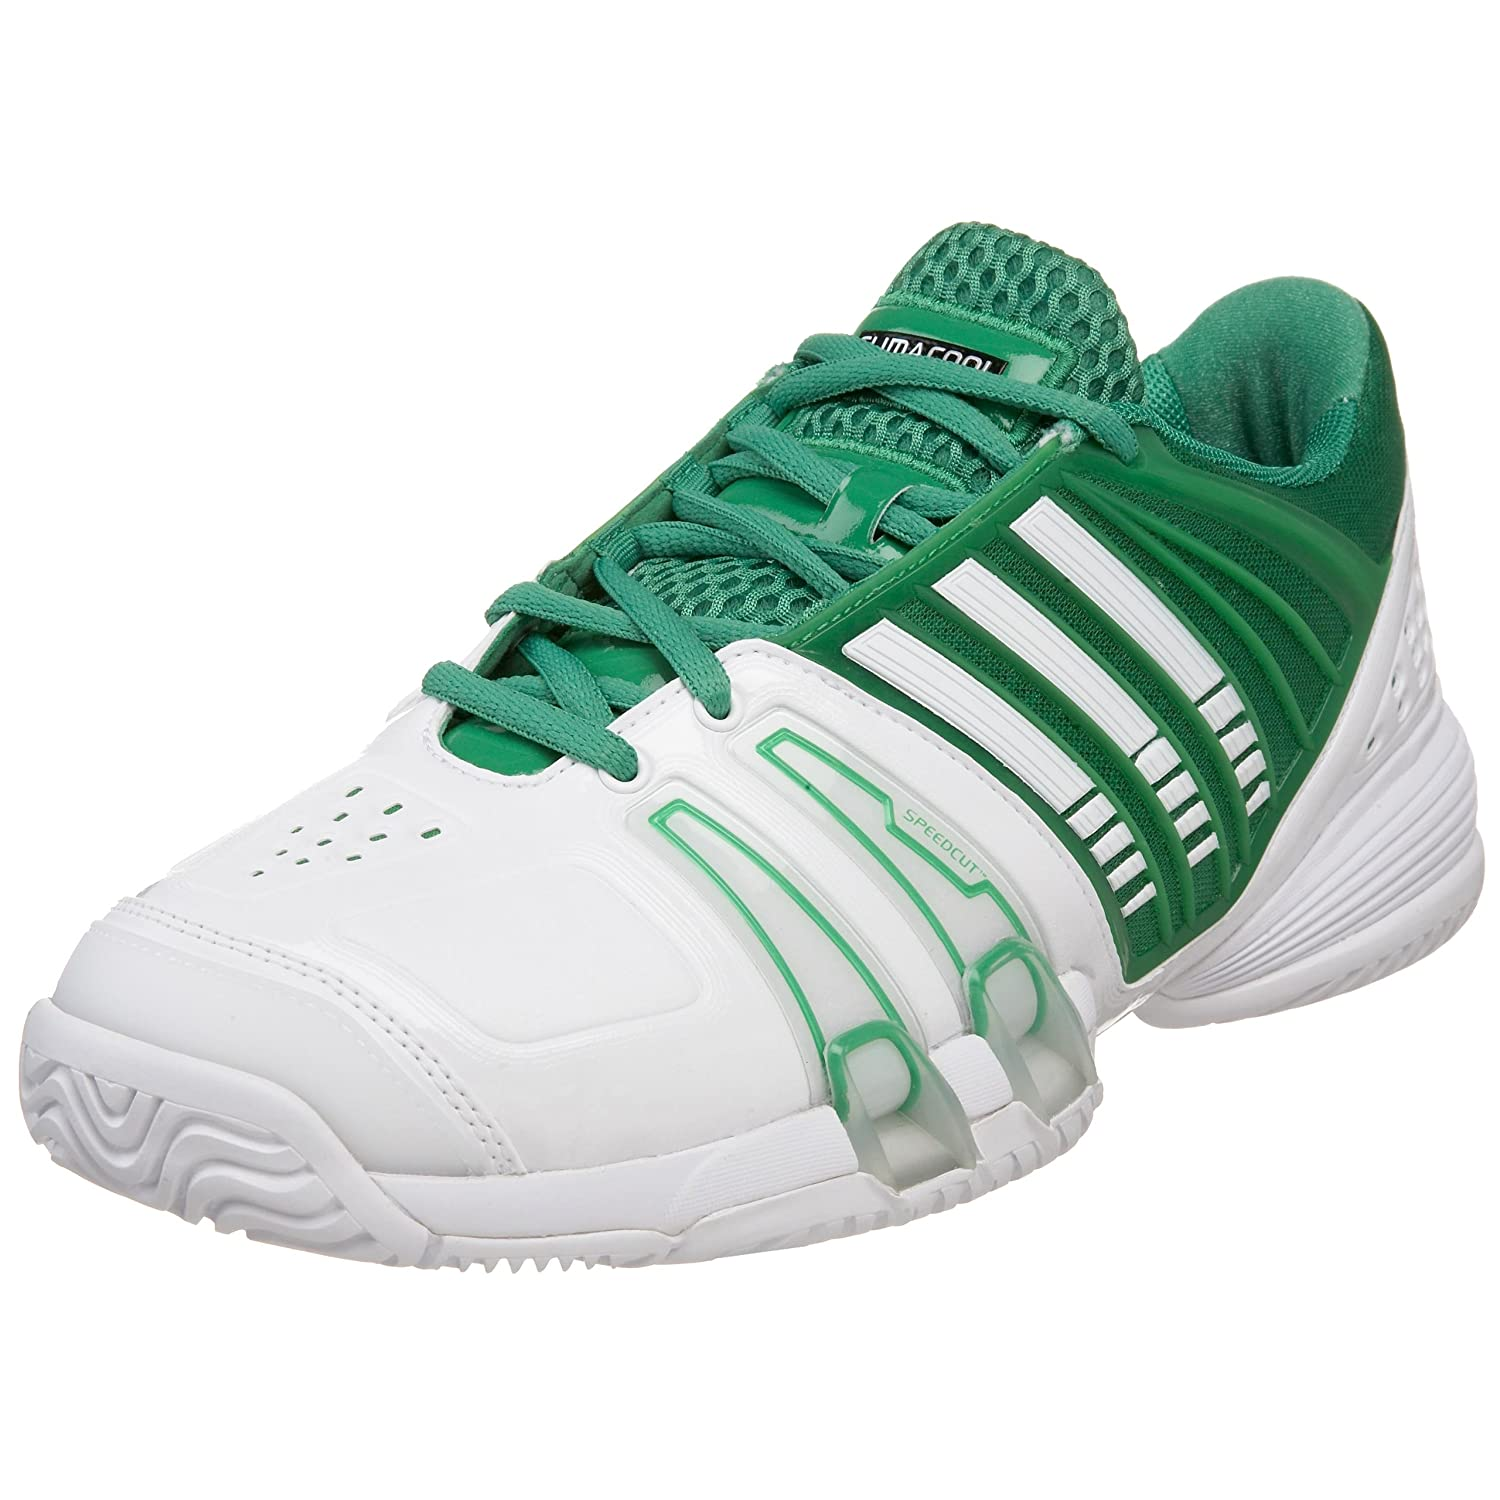 premium selection 2a0ab afe0a Adidas Men's Climacool Genius Novak II Tennis Shoe, White ...